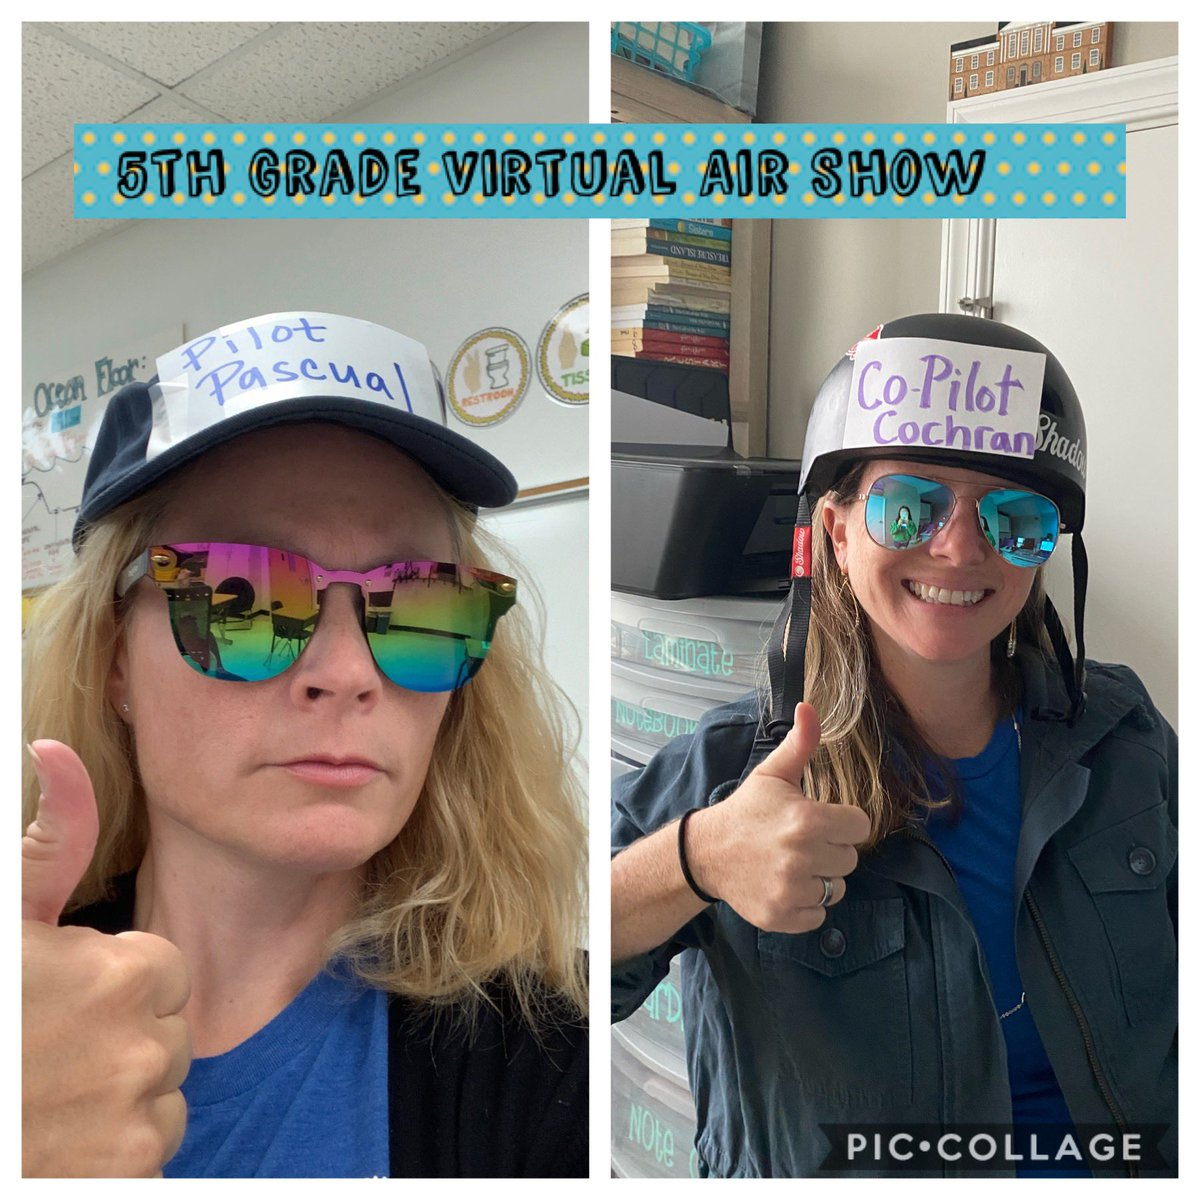 5th Grade Virtual Air Show here we come! All systems are a GO! We will be your proud pilots today! @elschulz_liz @cfescolts #coltspride #VBAlwaysLearning https://t.co/Rp4iPTFWaS